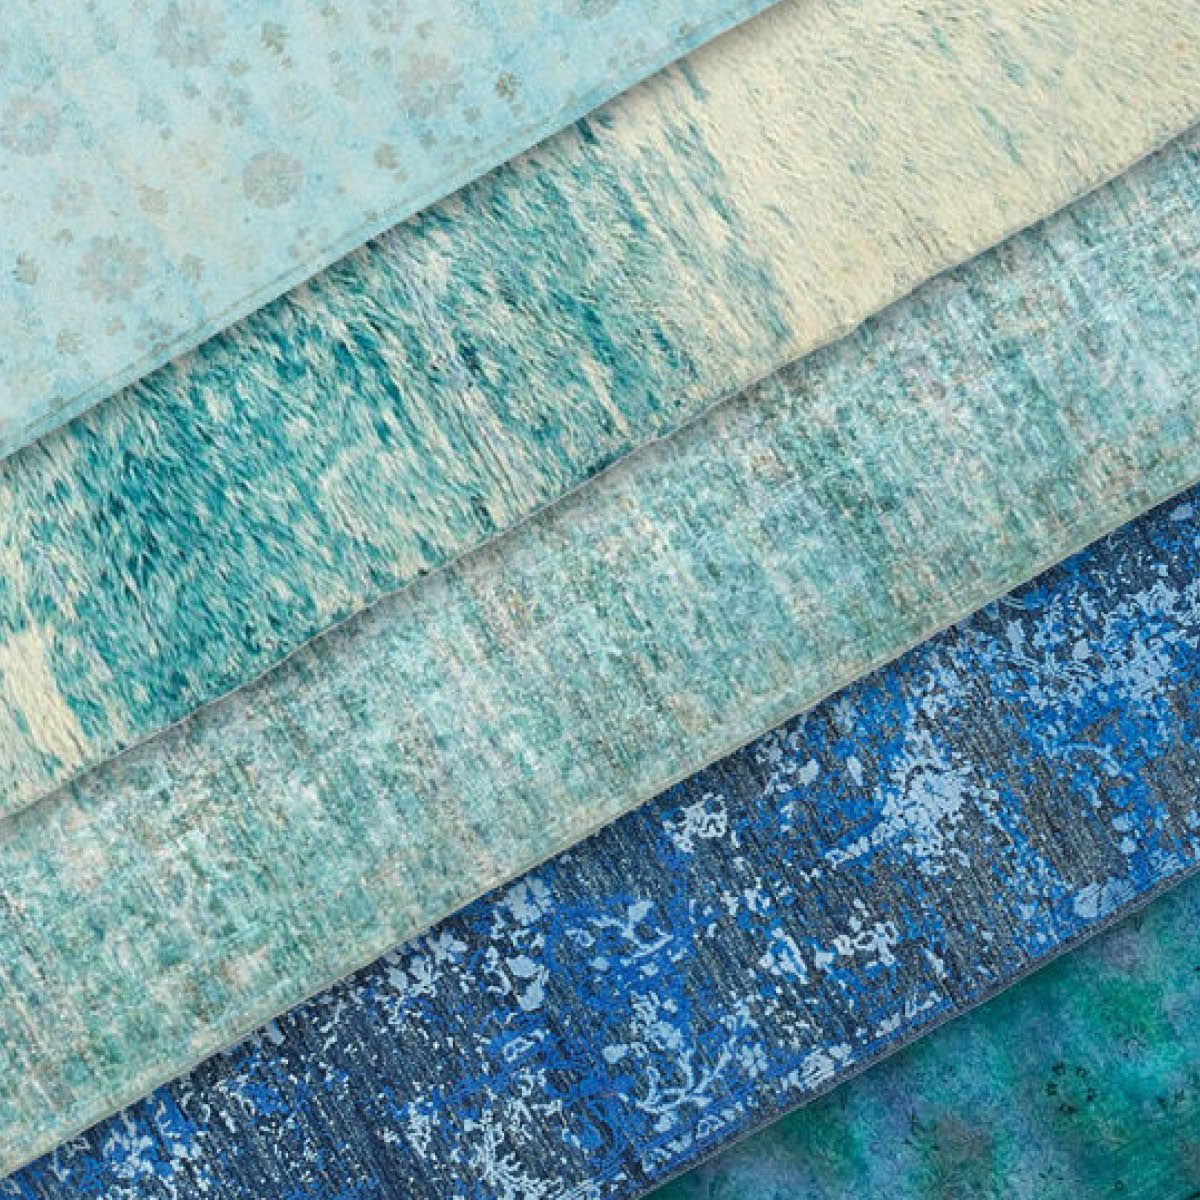 Southwest Rugs Whiskey River Turquoise Rug Collection: A5de936ed274b1c13a5db45e70a09e7c.jpg 1,200×1,200 Pixels